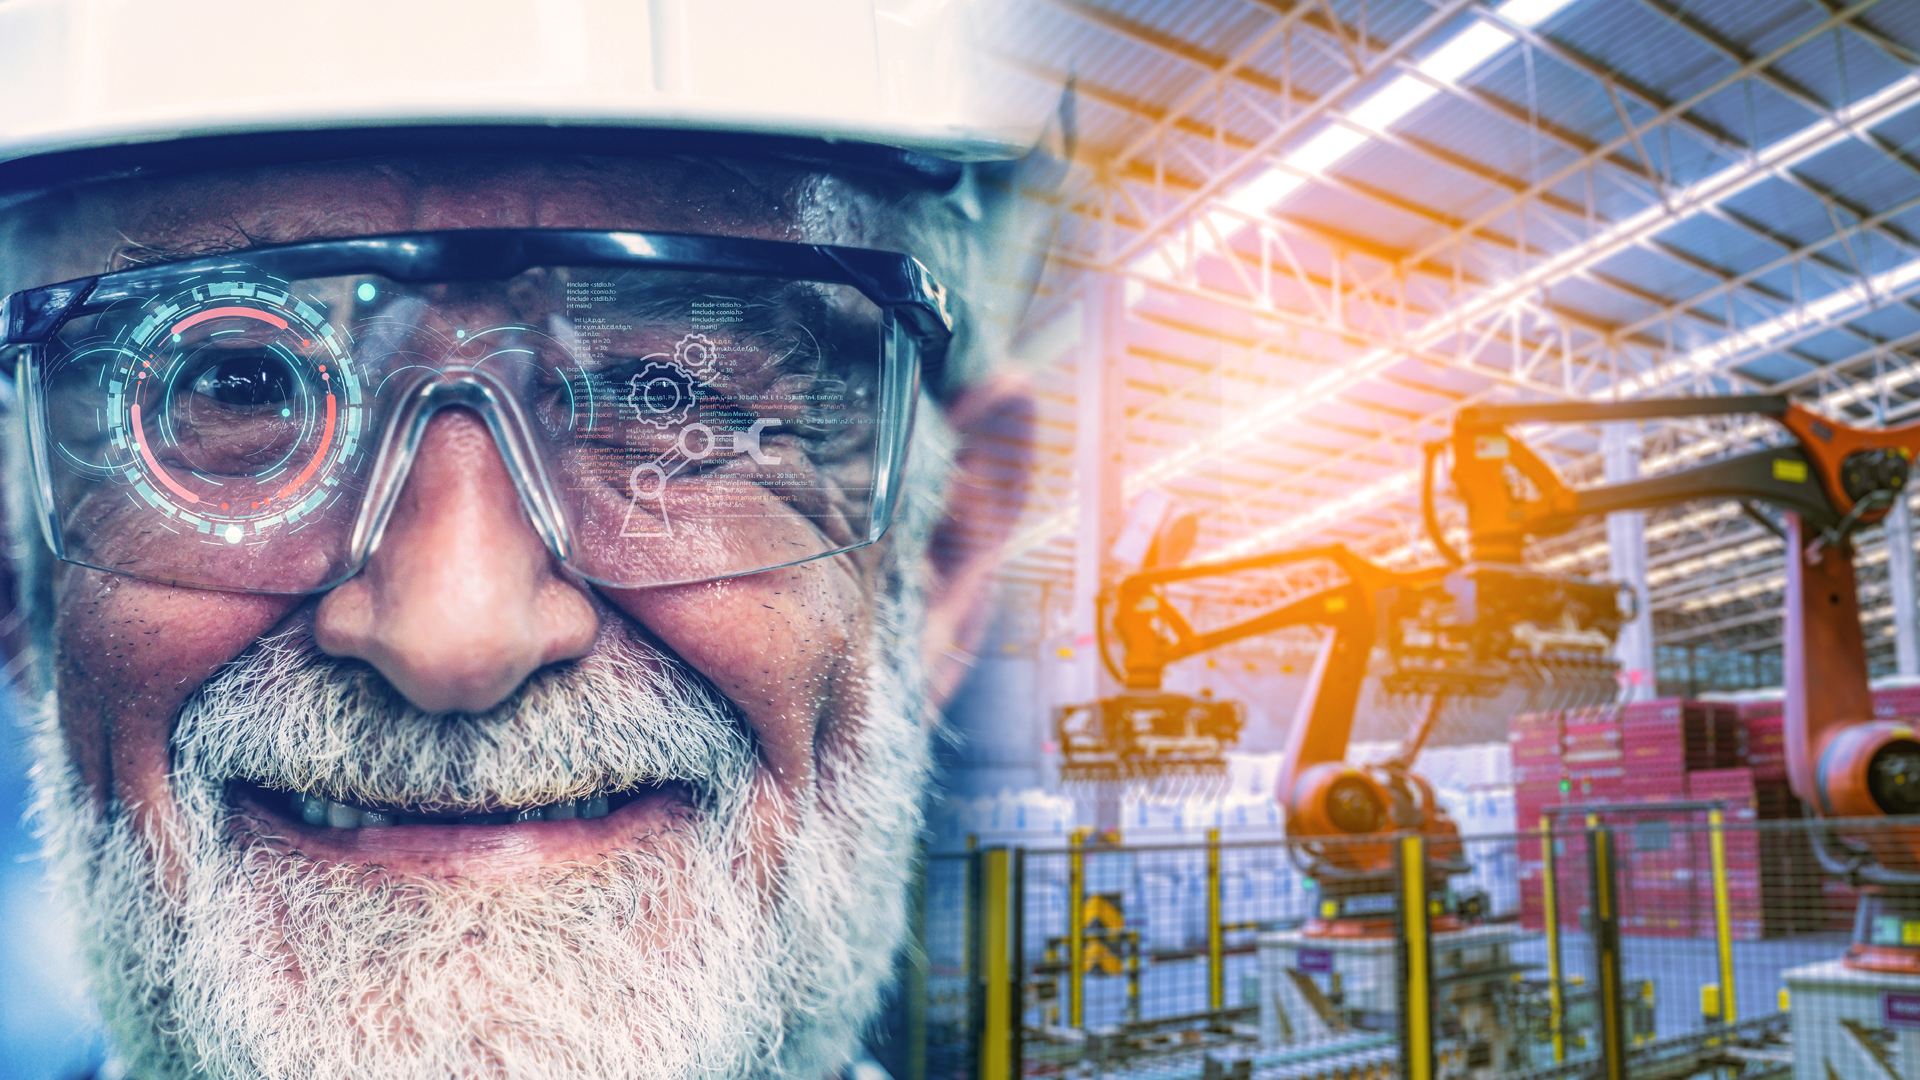 Benefits of IIoT in Manufacturing